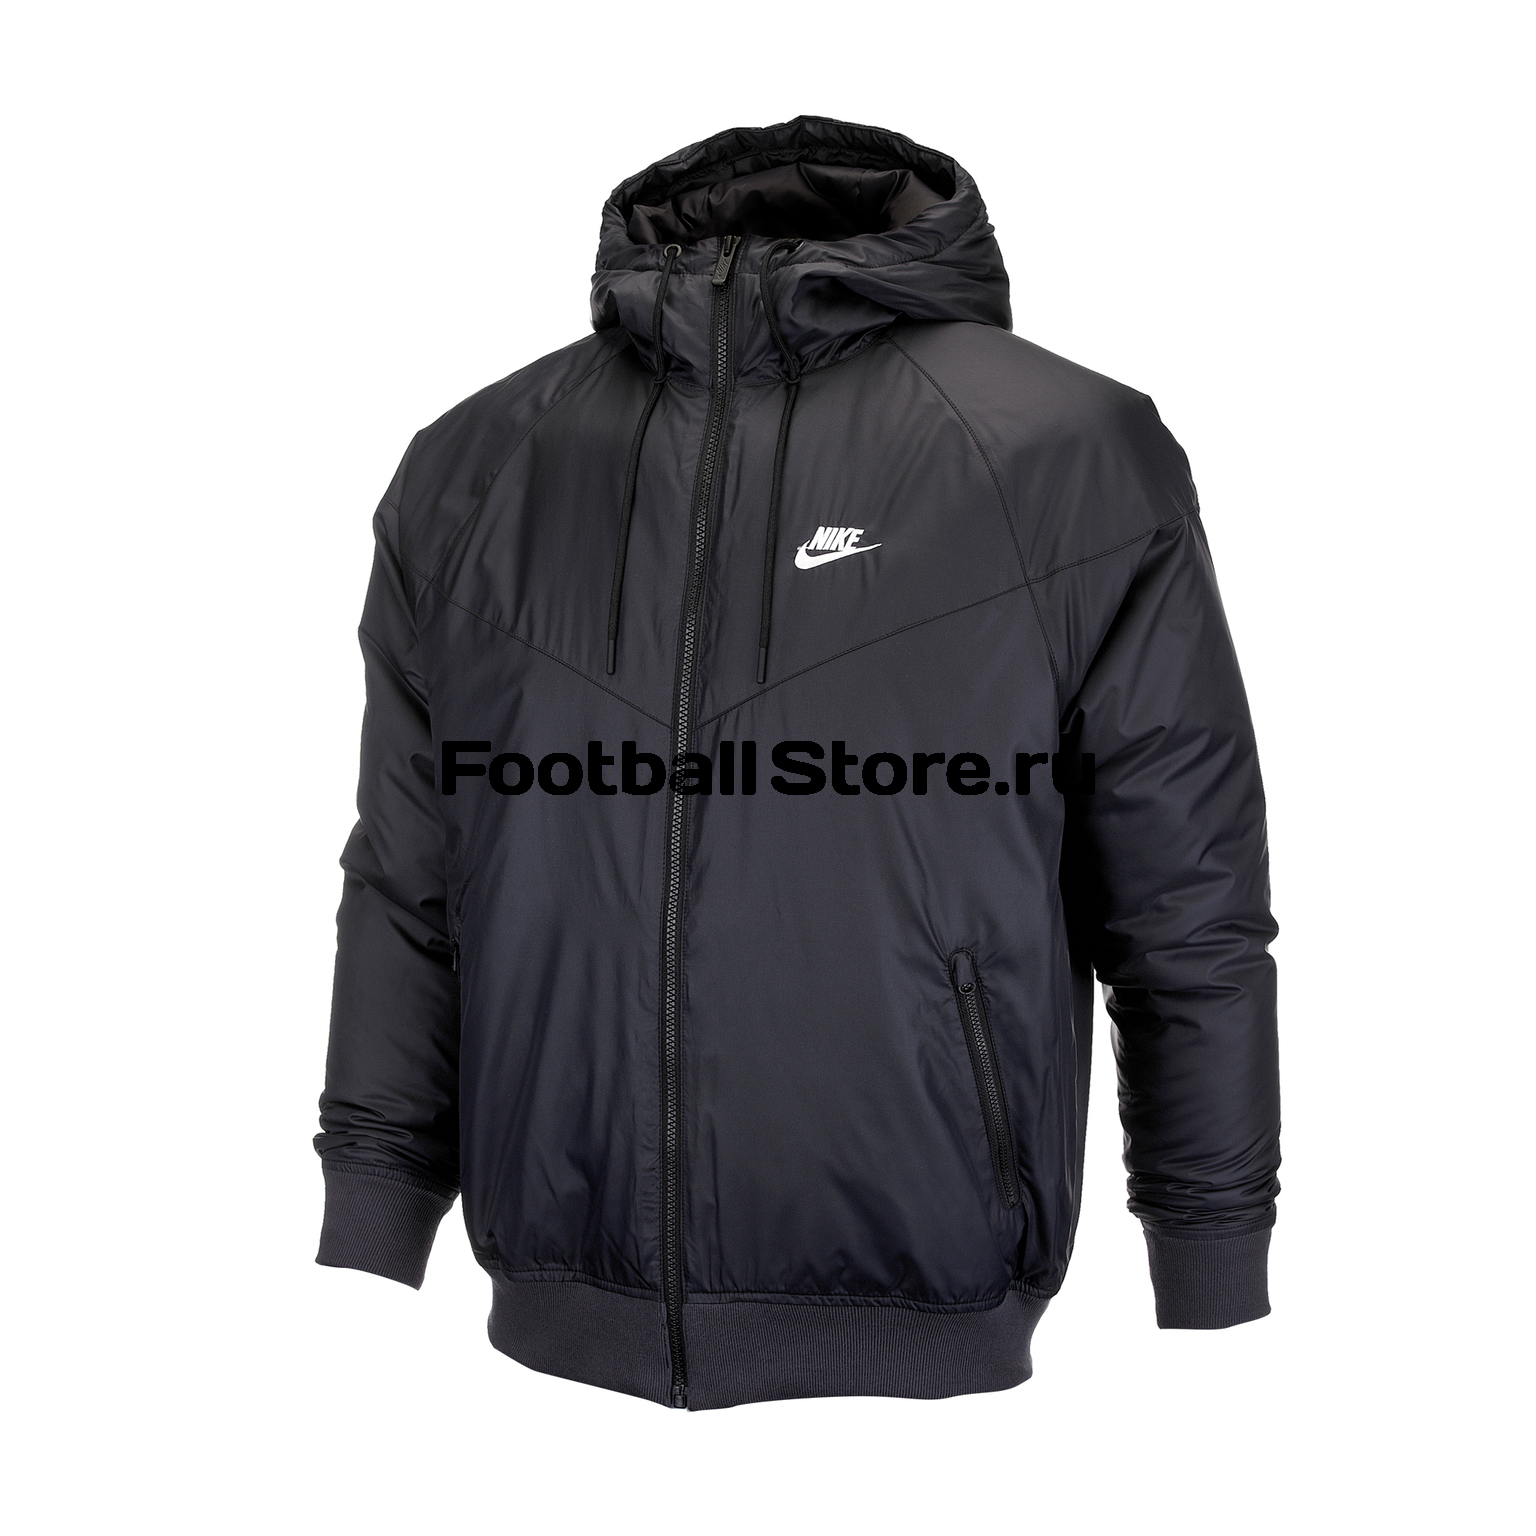 Куртка Nike Windrunner Jacket AR2189-010 nike jacket mens spring sports hooded training jacket 724799 010